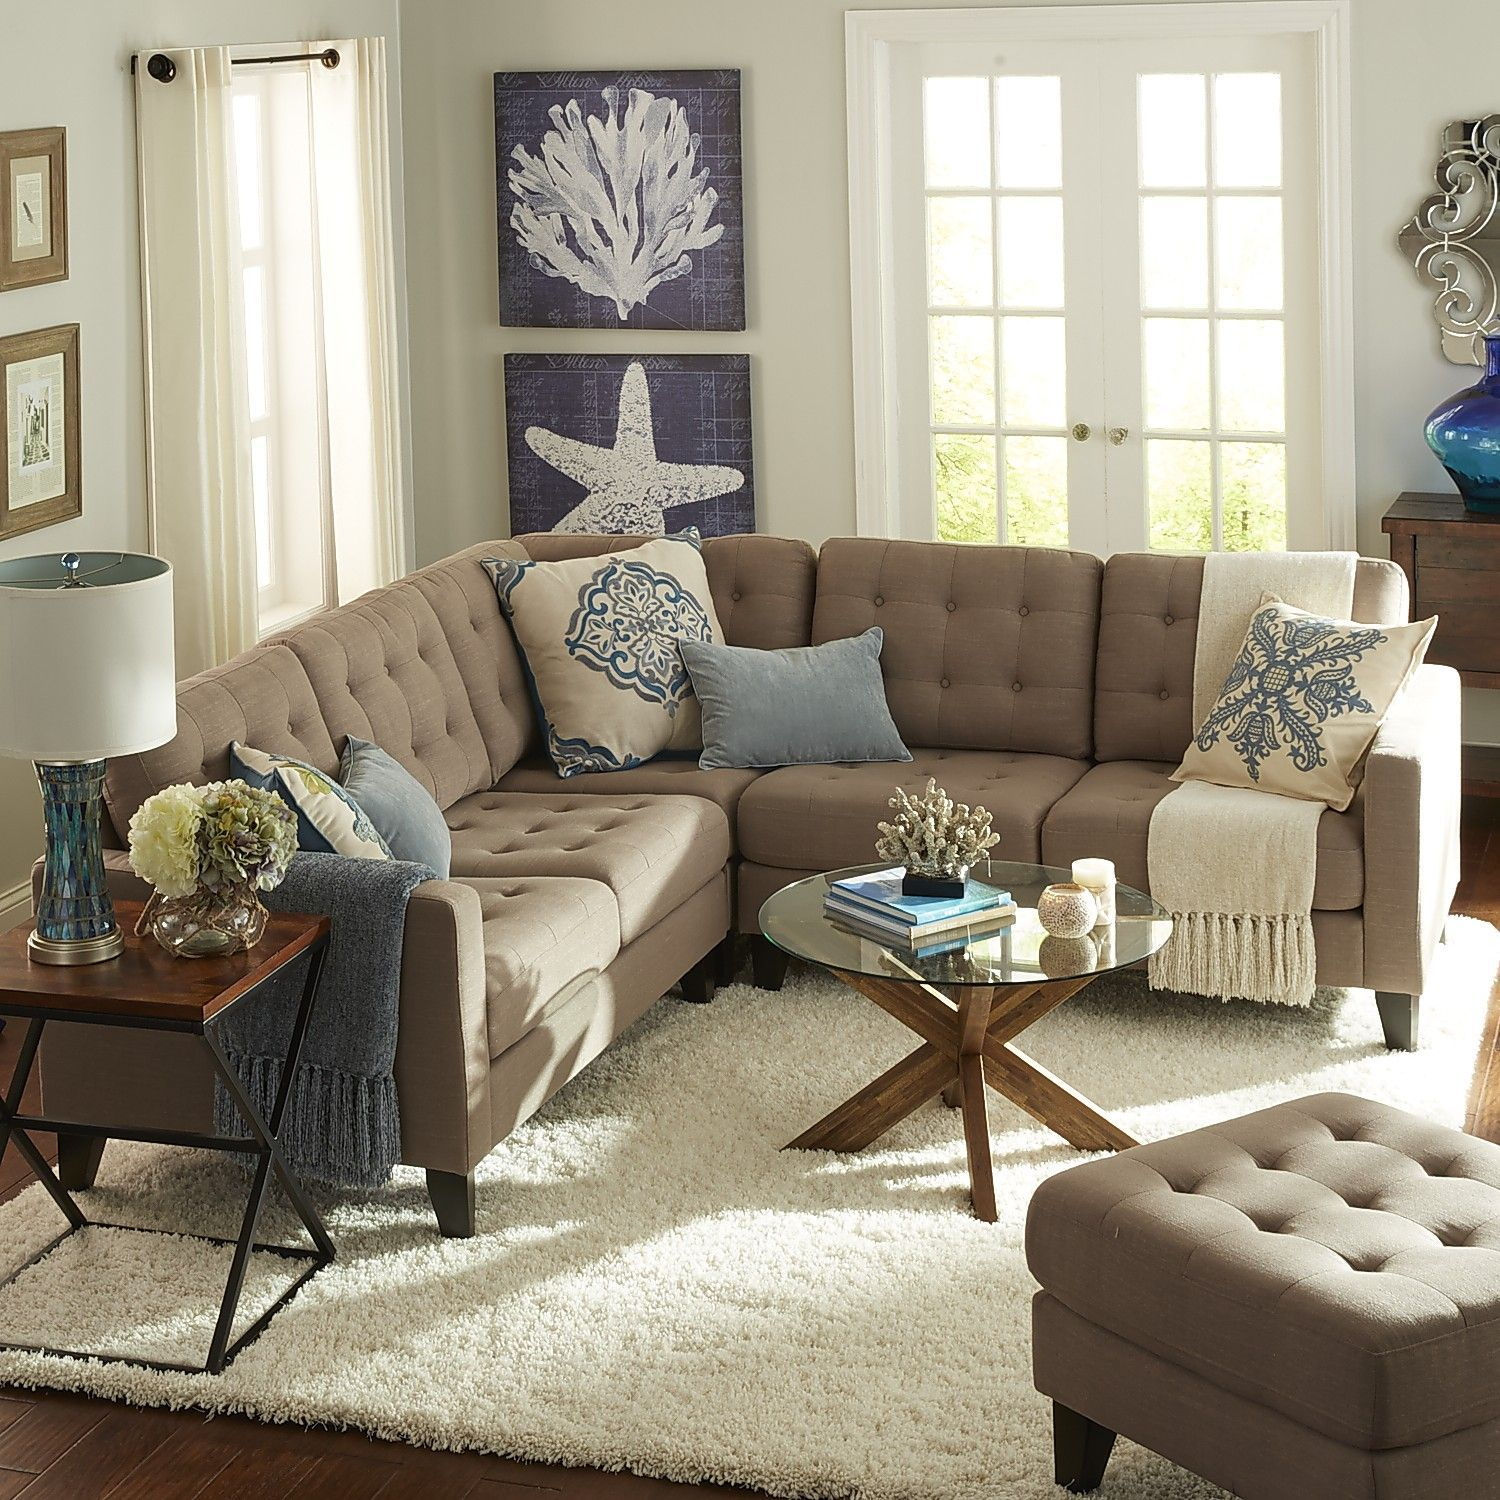 Build Your Own Nyle Putty Tan Sectional Collection | Birch, Tan ...